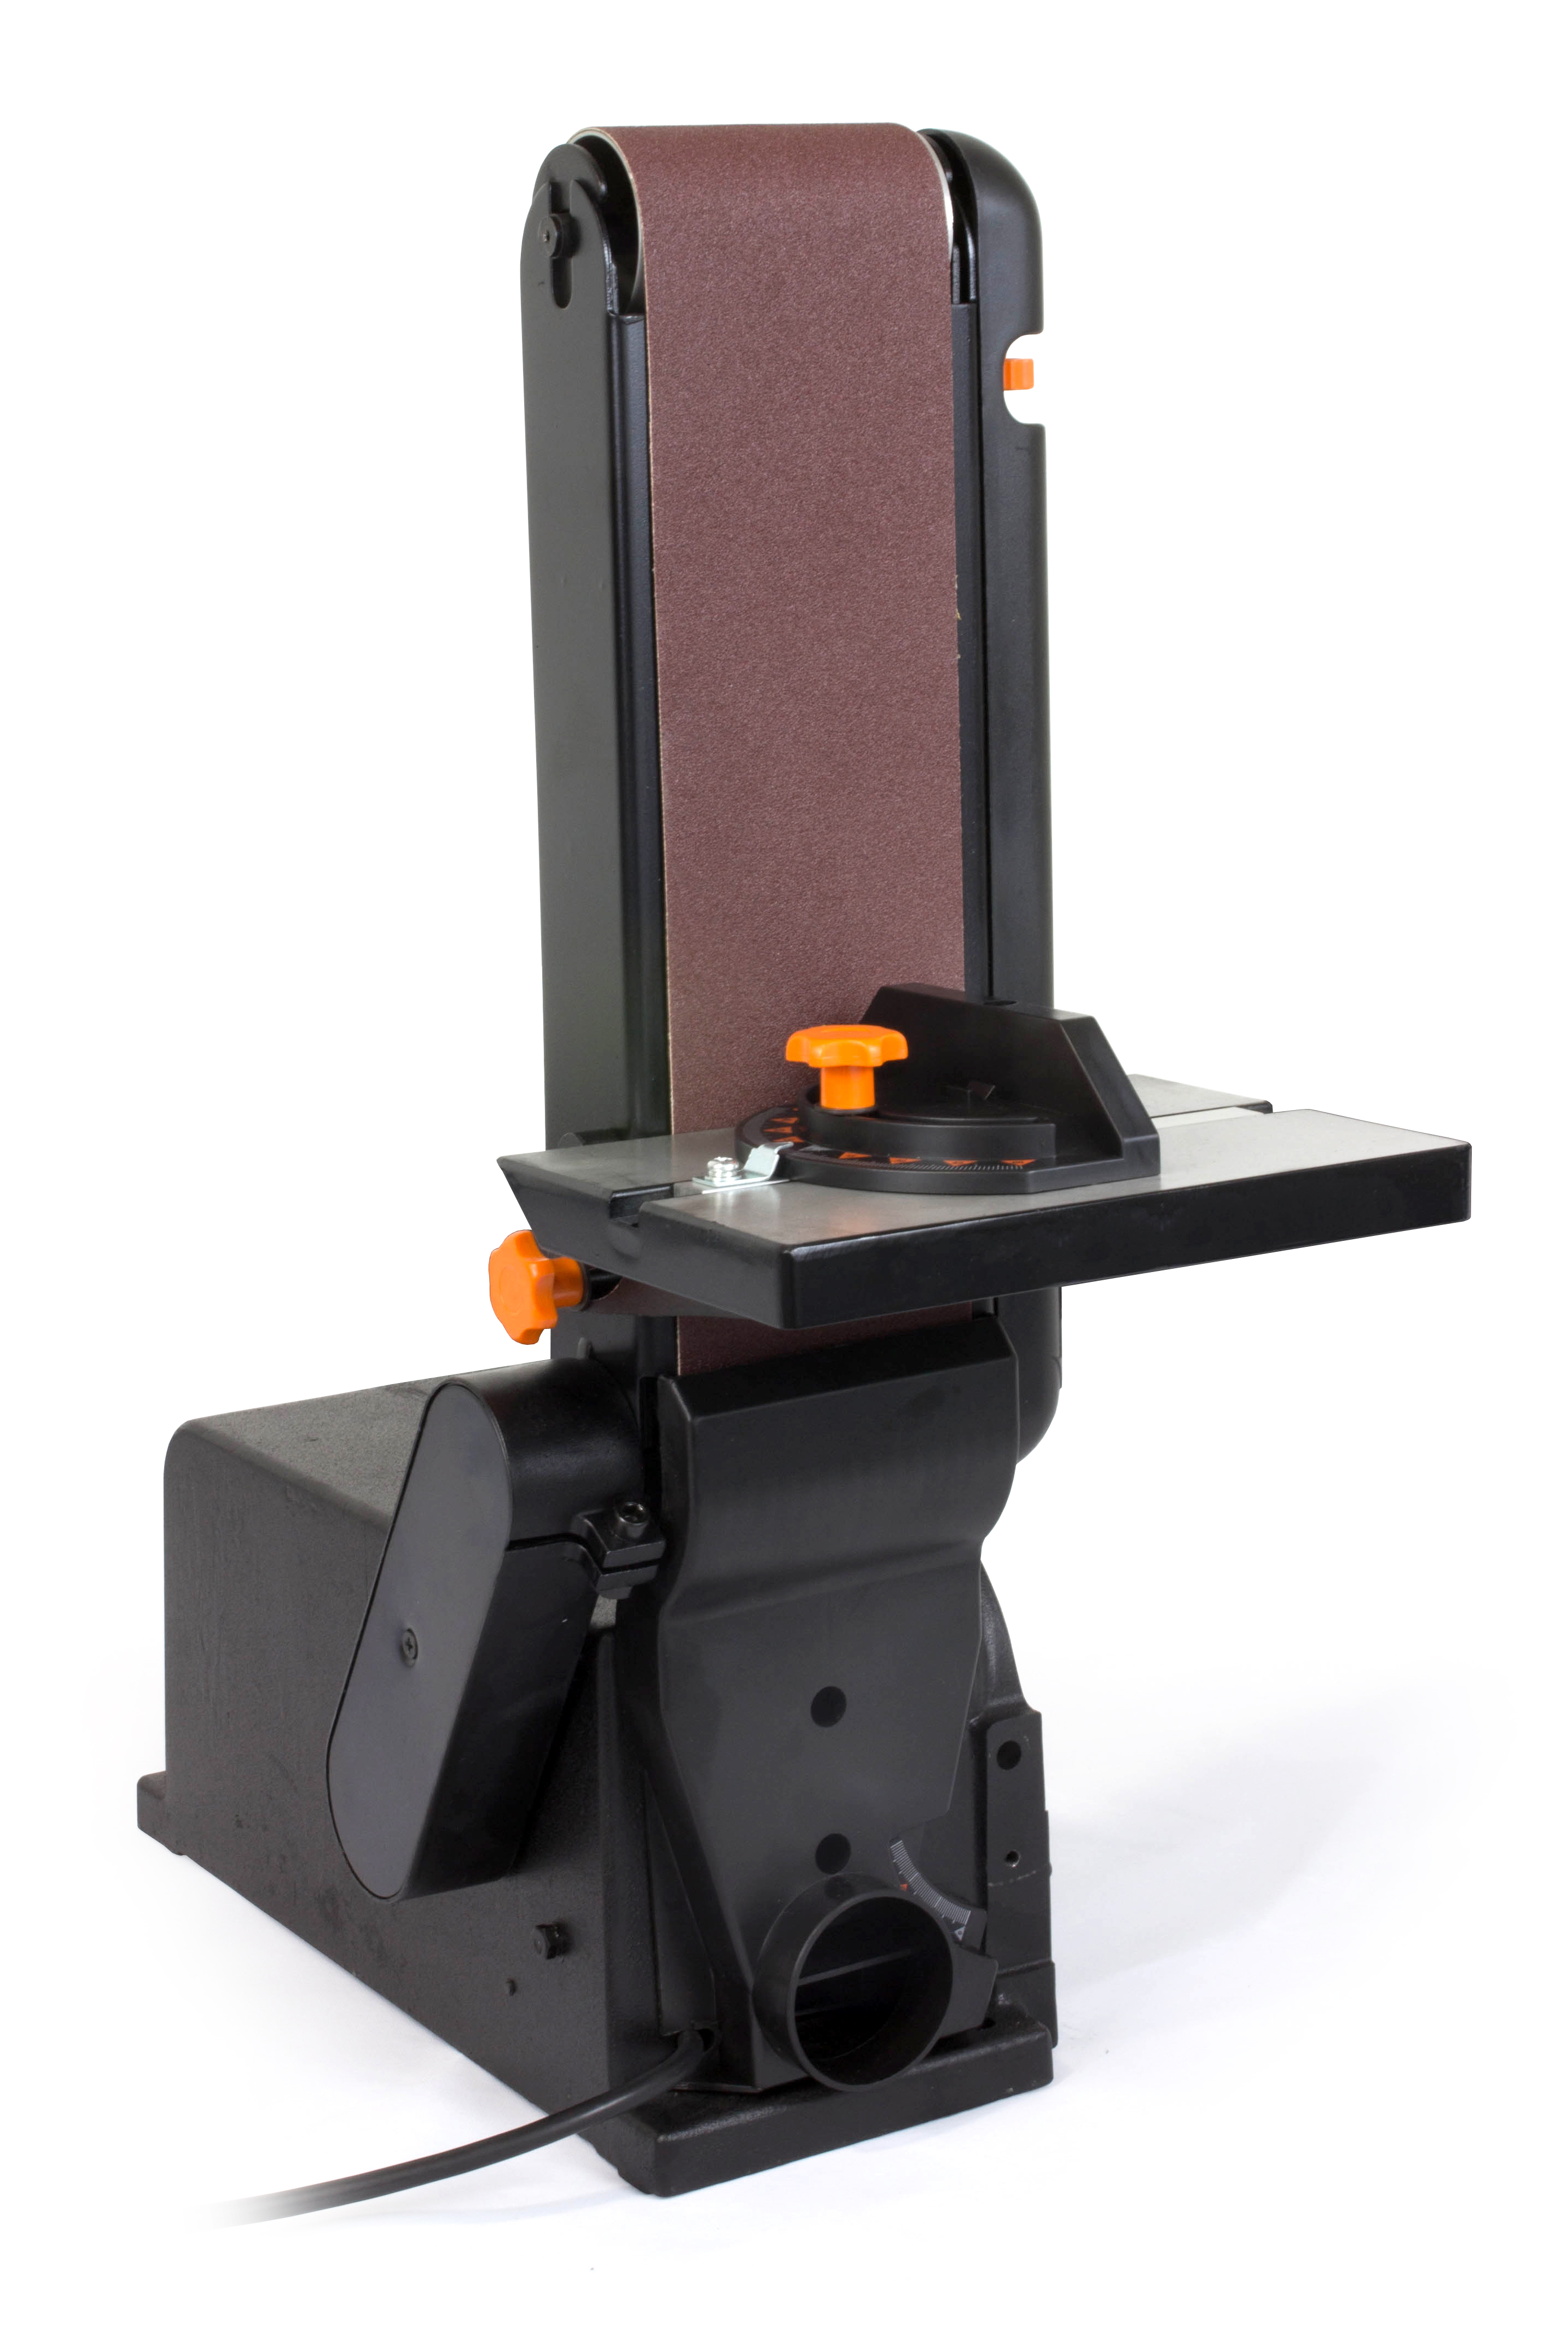 Wen 4 x 36-Inch Belt and 6-Inch Disc Sander with Cast Iron Base